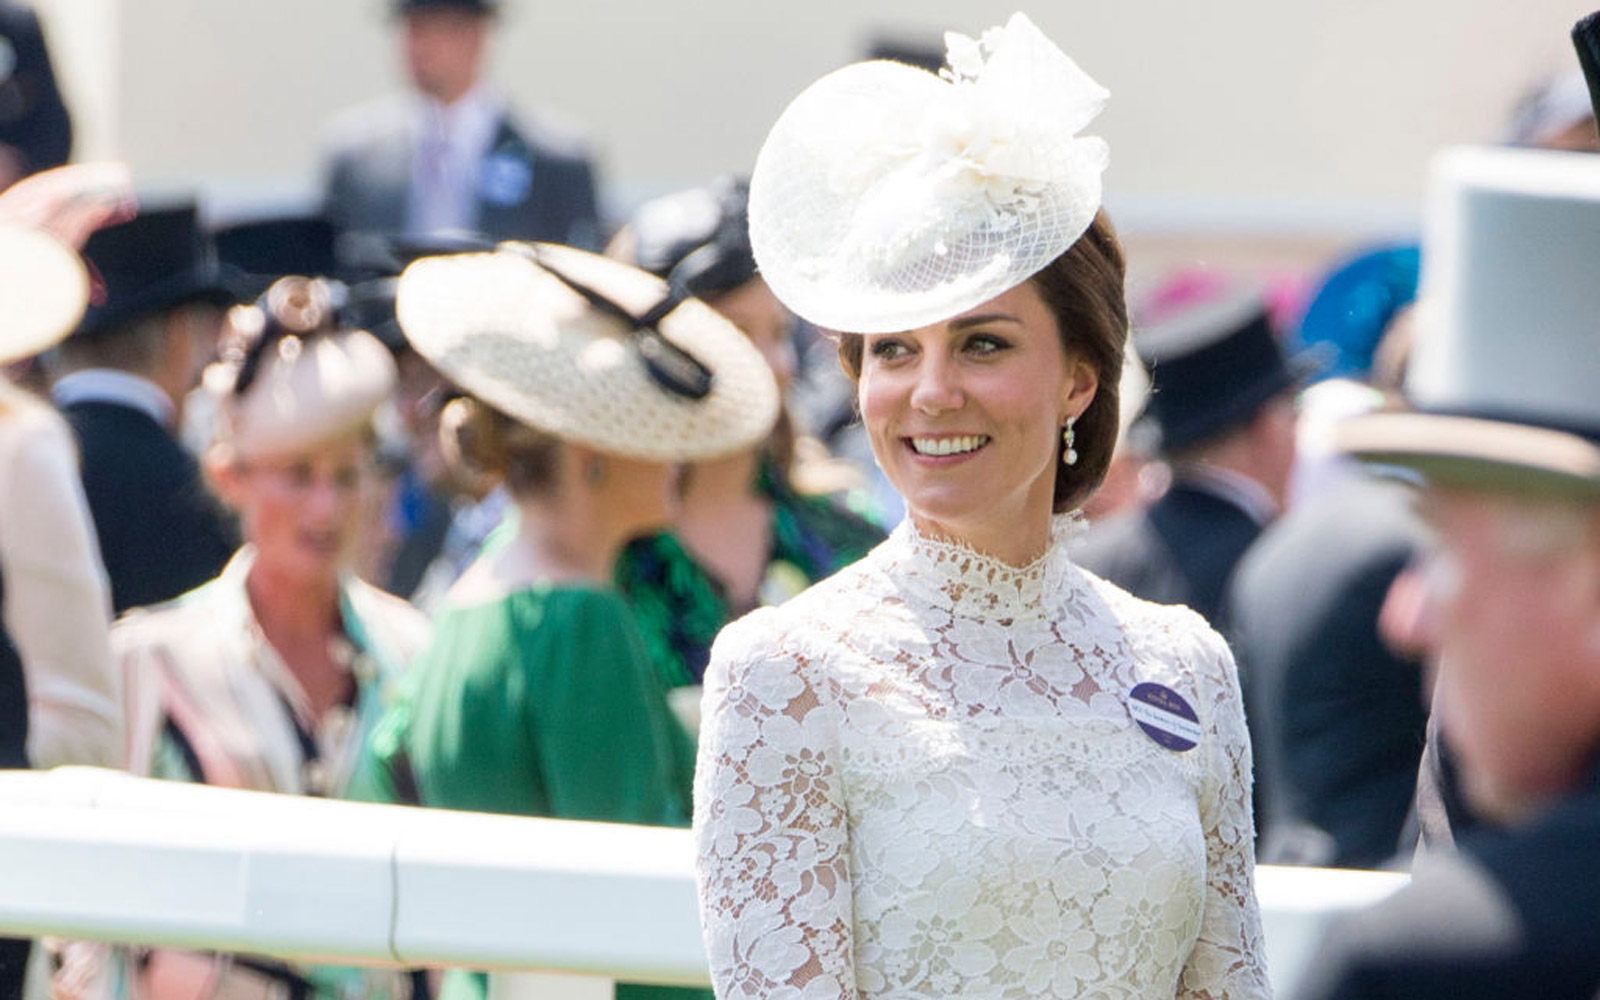 ASCOT, ENGLAND - JUNE 20:  Catherine, Duchess of Cambridge attends Royal Ascot 2017 at Ascot Racecourse on June 20, 2017 in Ascot, England.  (Photo by Mark Cuthbert/UK Press via Getty Images)